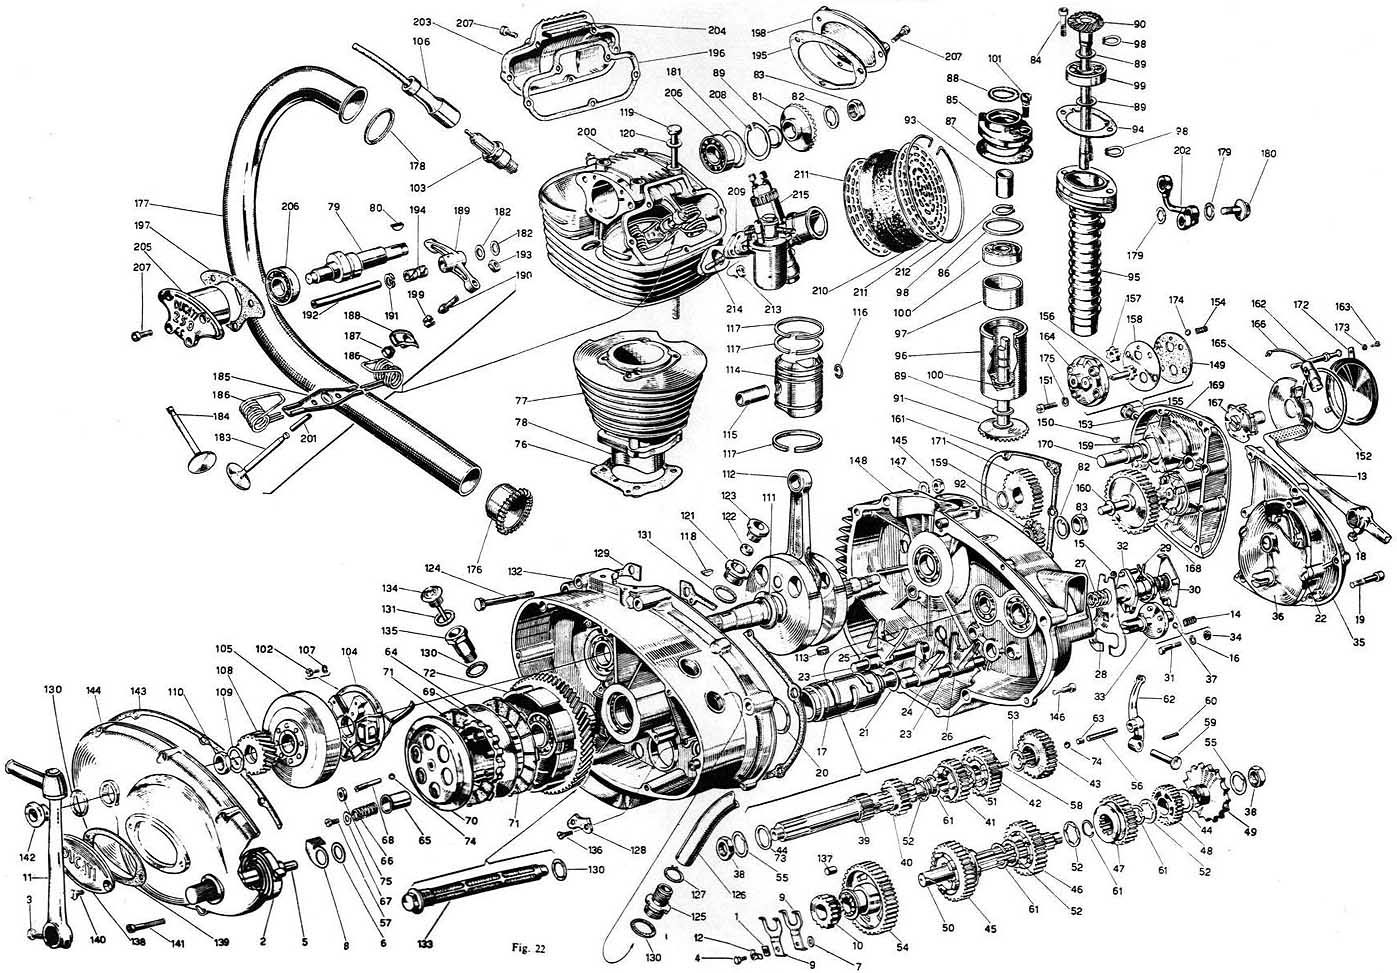 ducati engine schematic cutaway diagrams engineering. Black Bedroom Furniture Sets. Home Design Ideas